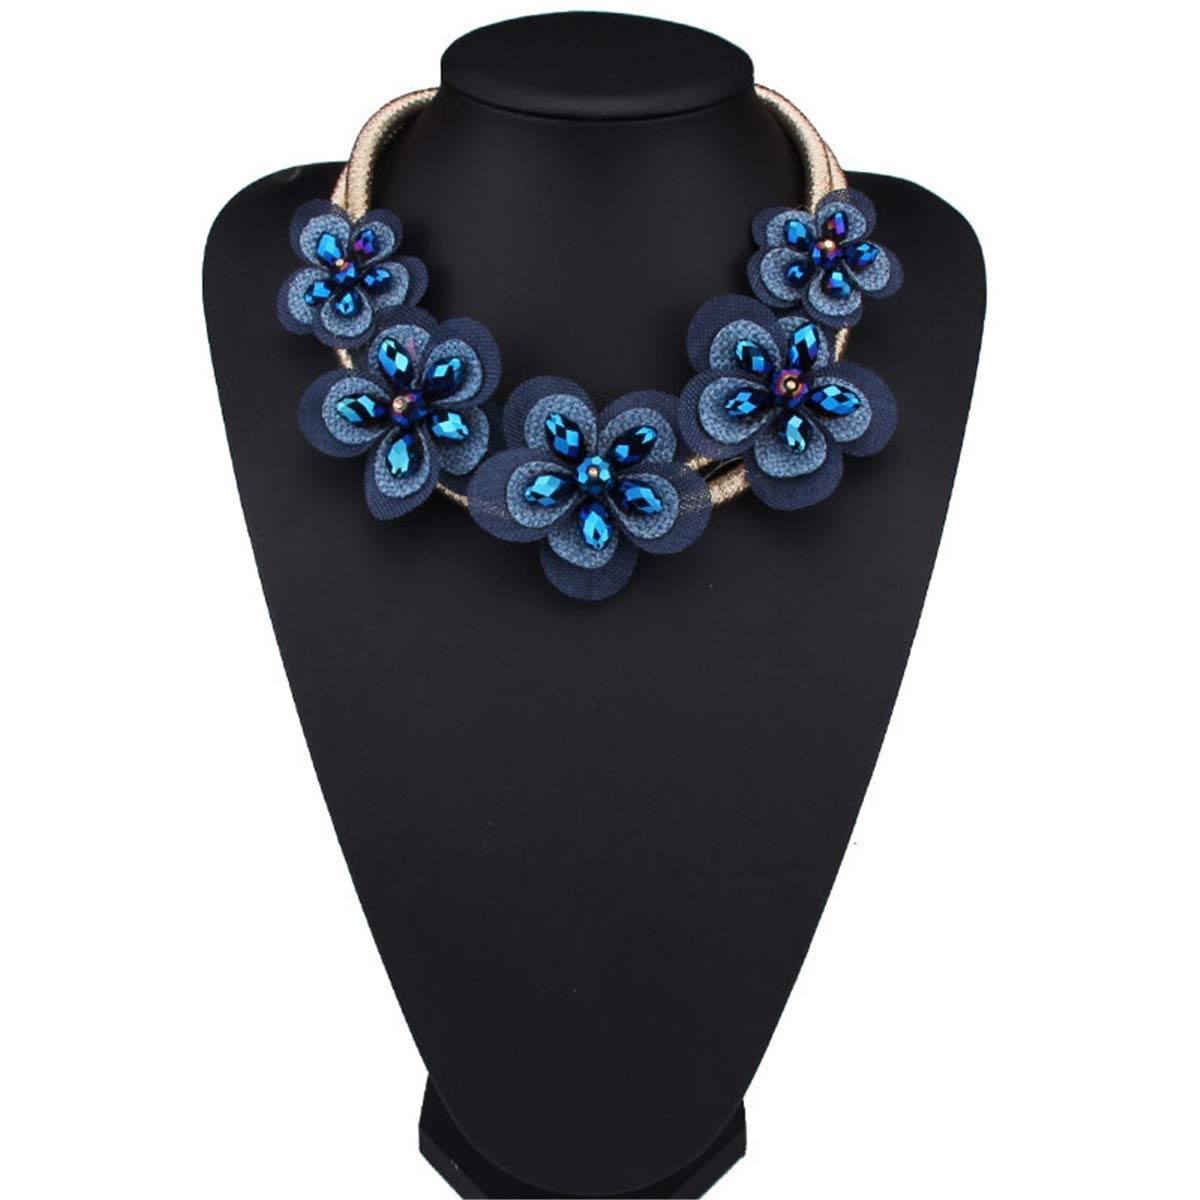 KTYX European and American Flower Necklace Multi-Layer Short Paragraph Wild 87cm Jewelry by KTYX (Image #3)